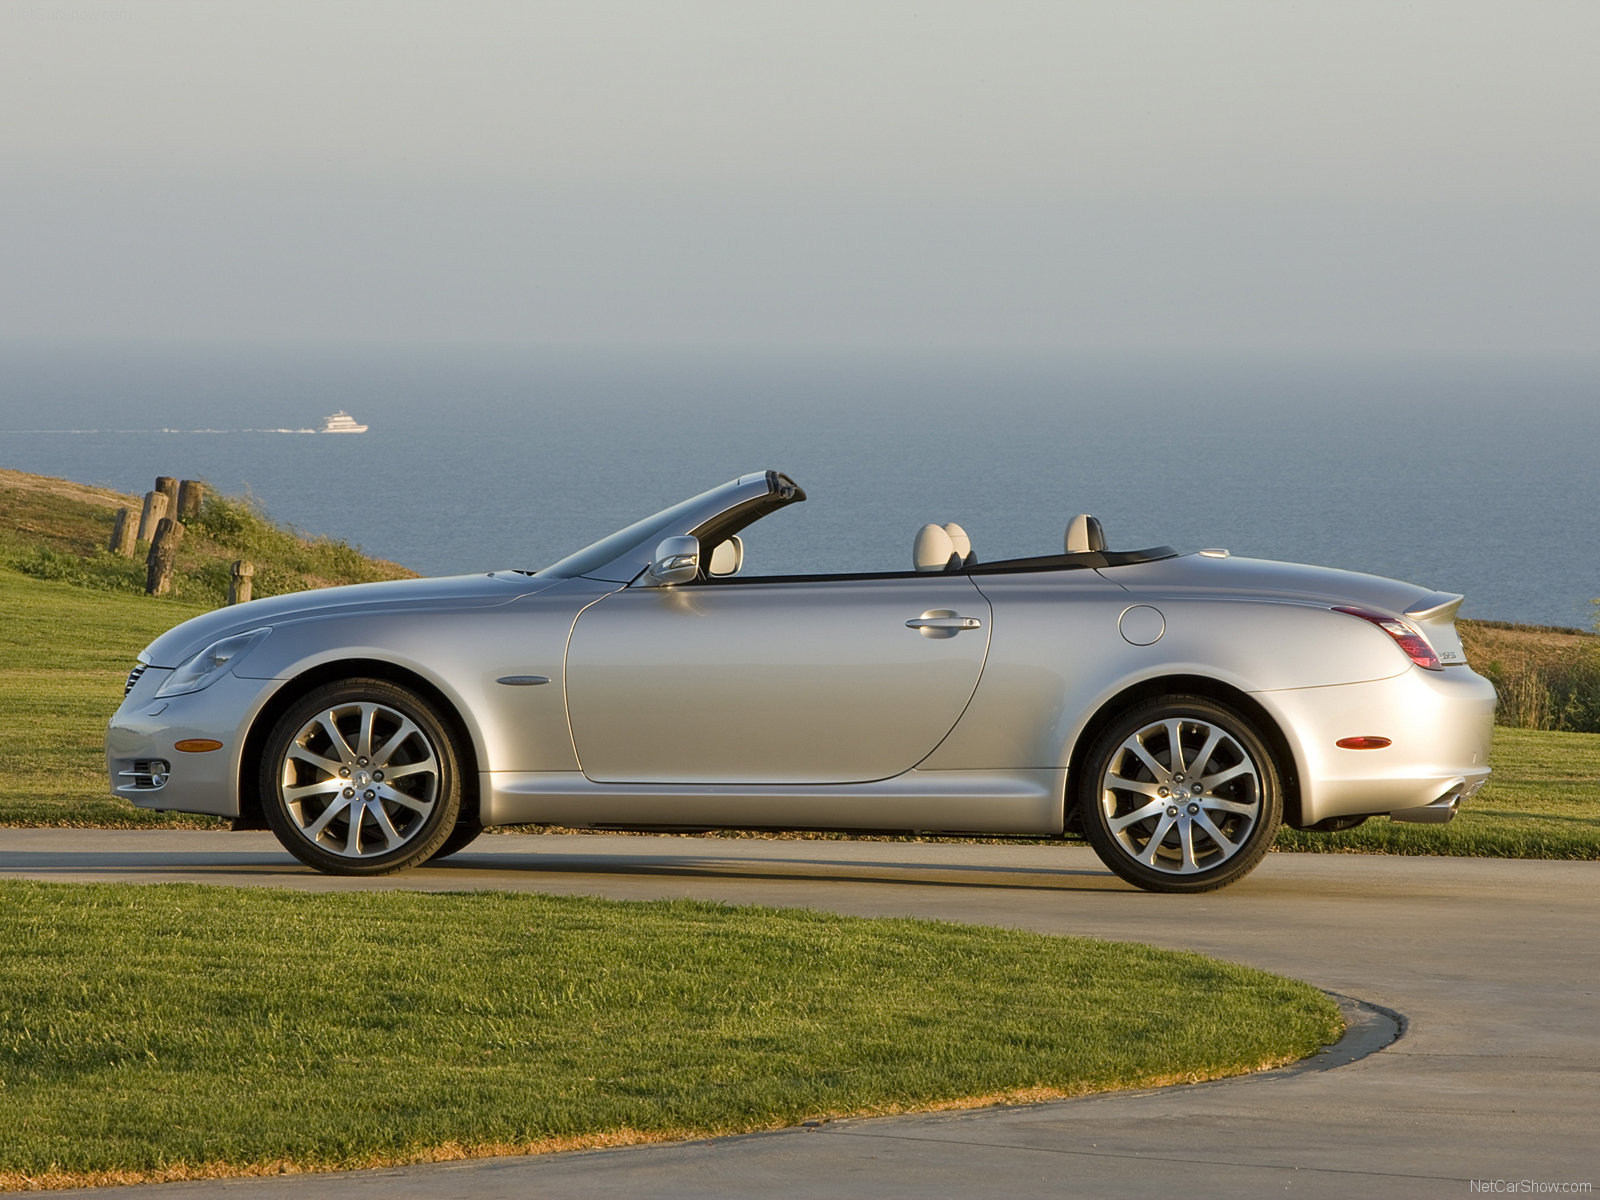 3dtuning of lexus sc430 convertible 2004 unique on line car configurator for more. Black Bedroom Furniture Sets. Home Design Ideas